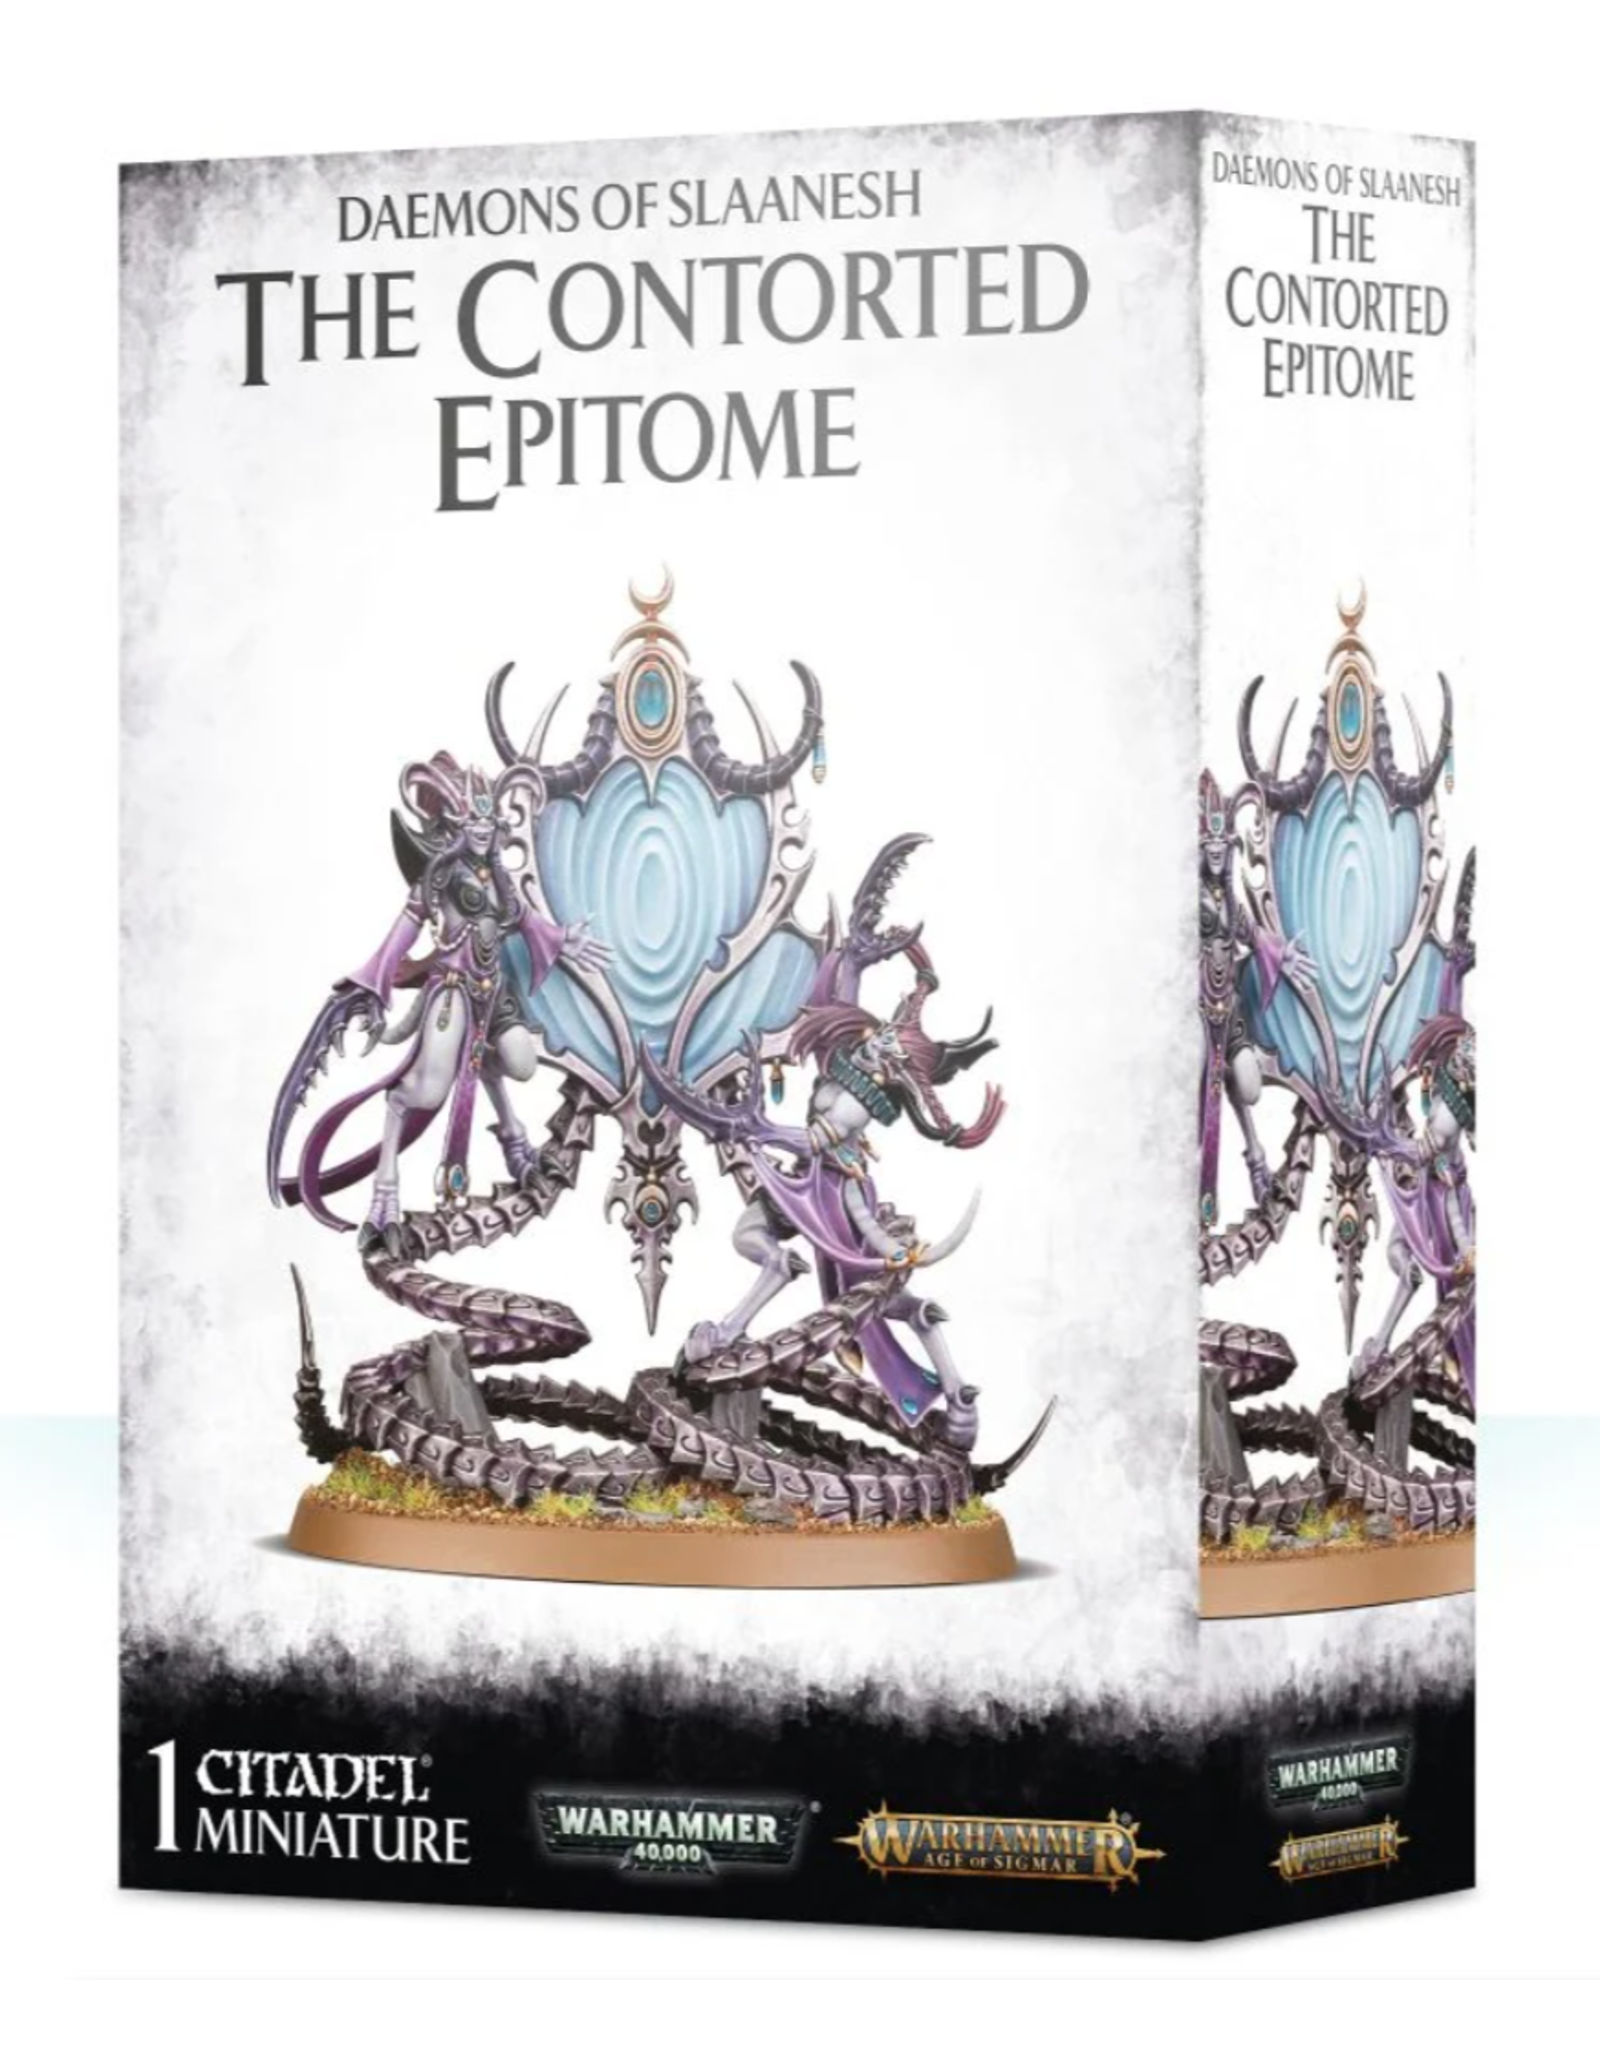 Warhammer 40K Daemons of Slaanesh: The Controrted Epitome